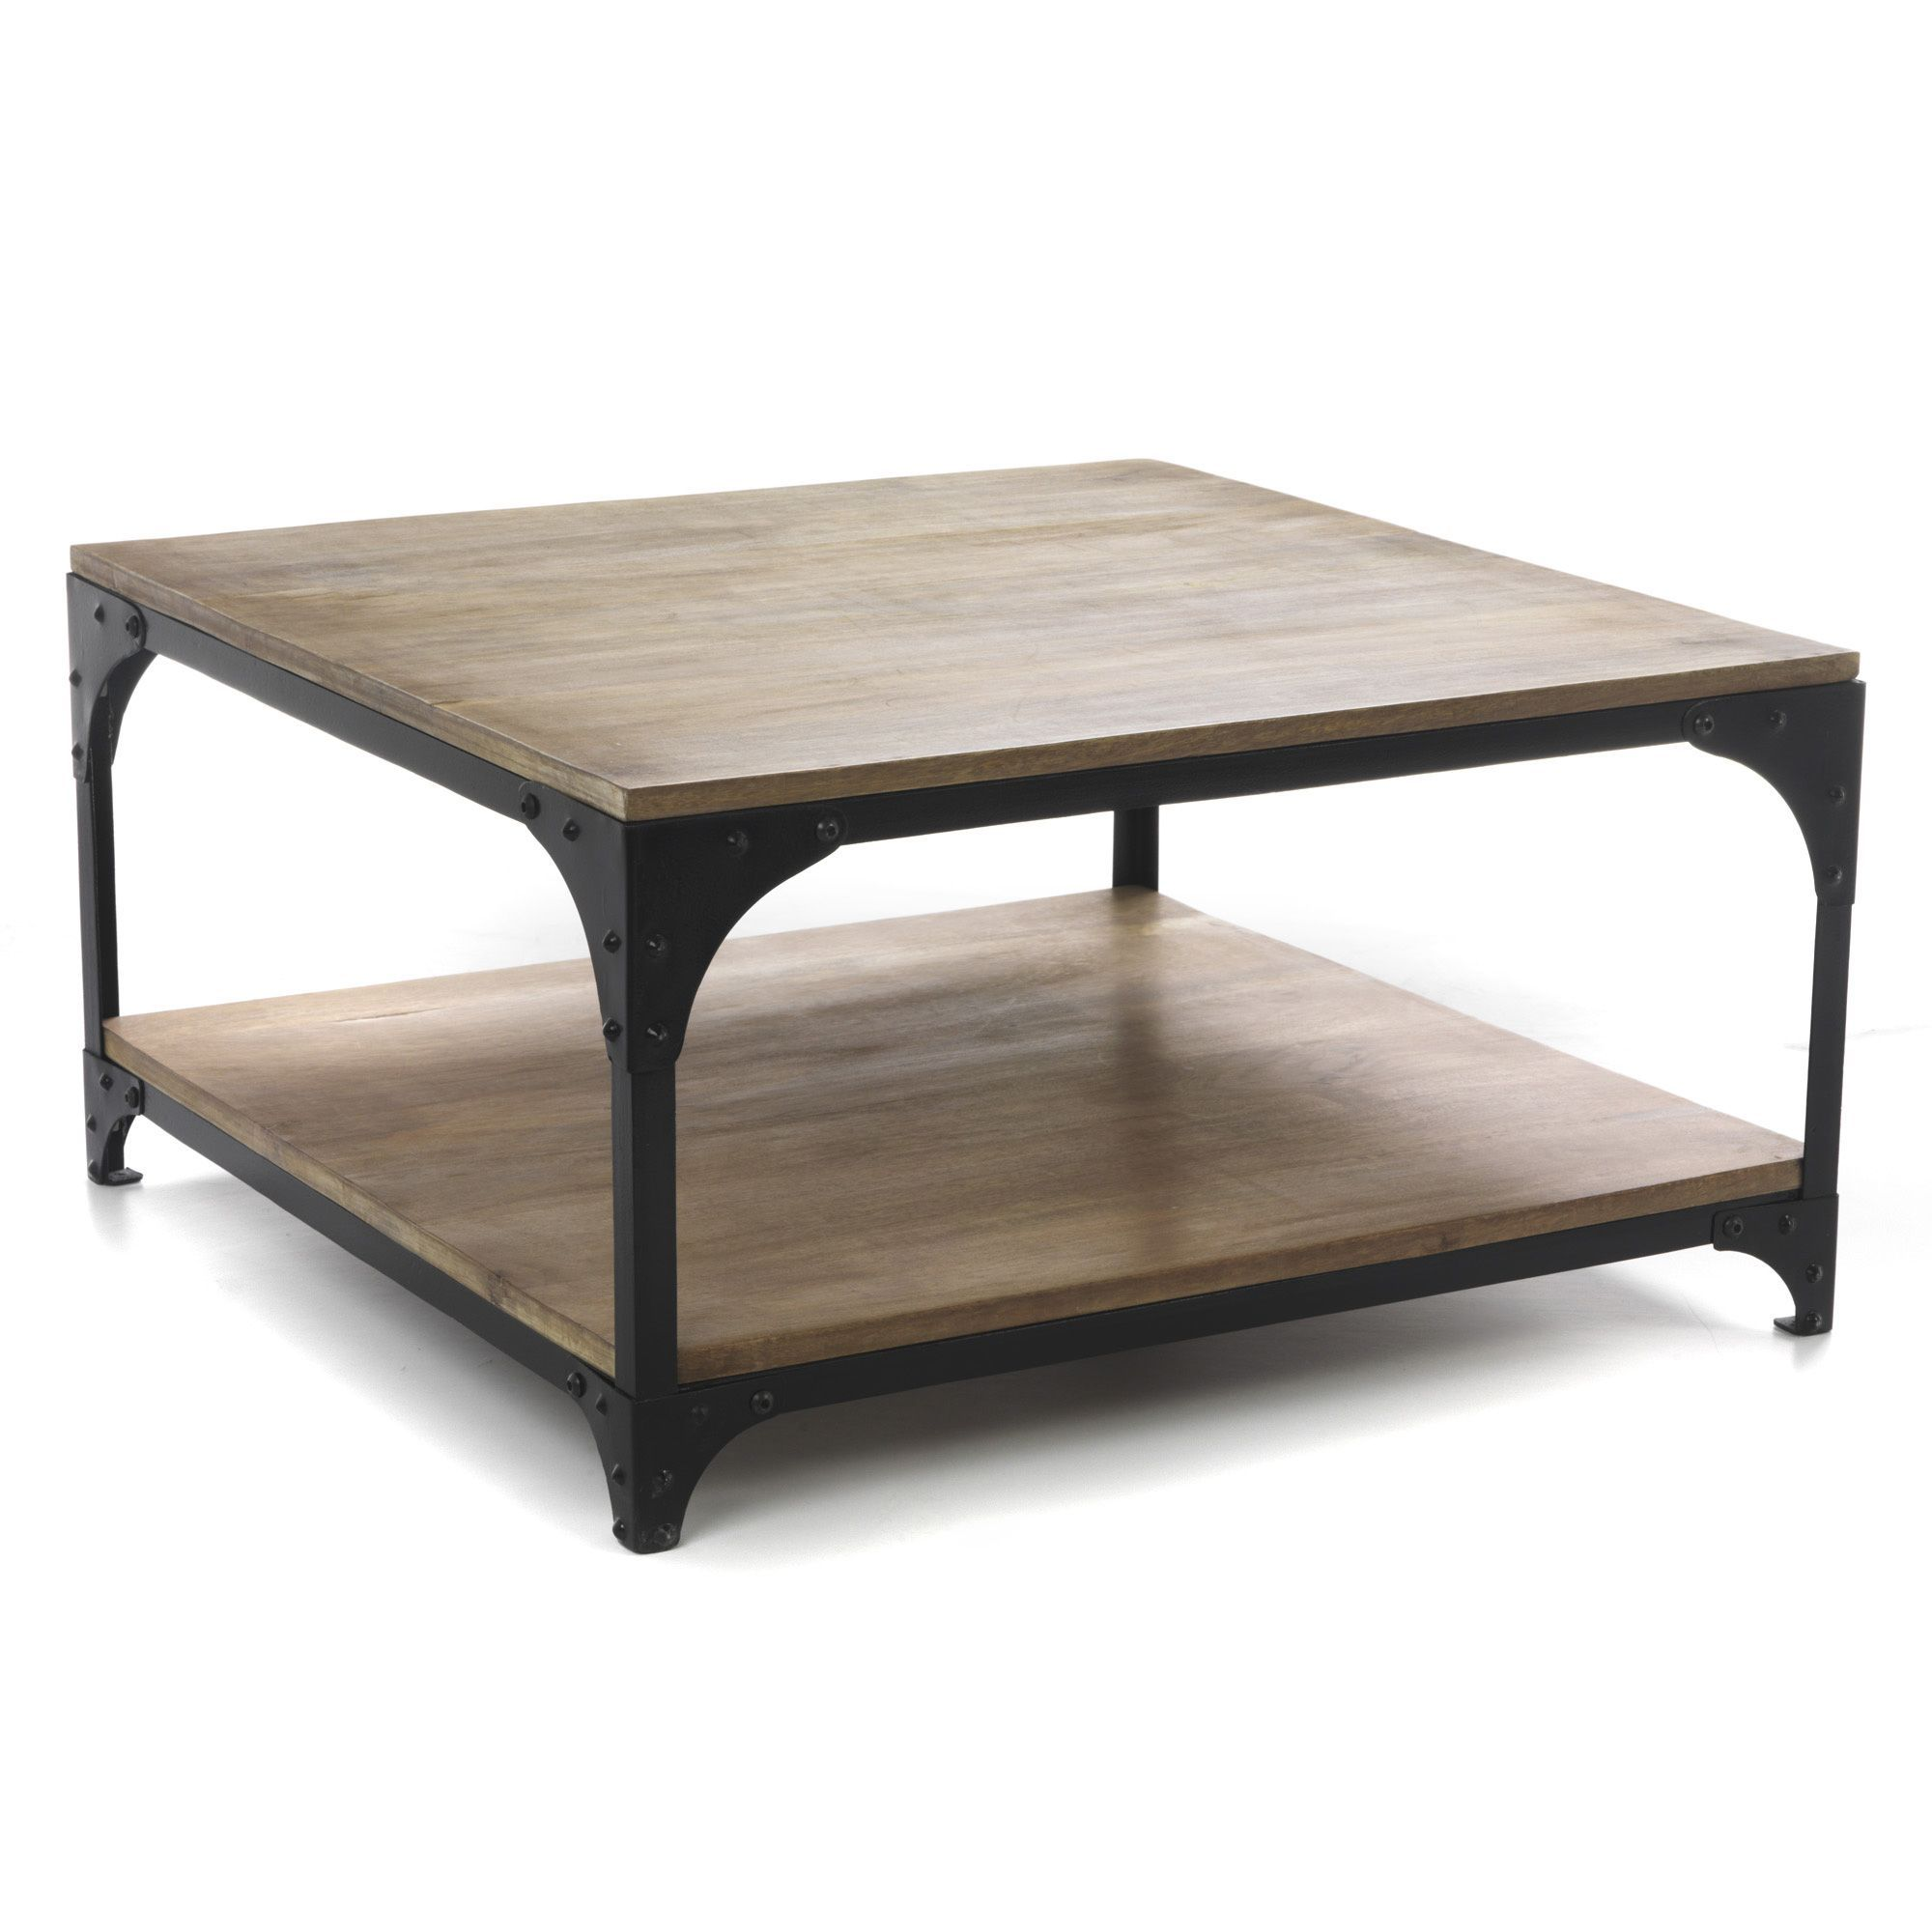 Table basse carr e industrielle naturel new ately les for Table salle a manger carree blanche